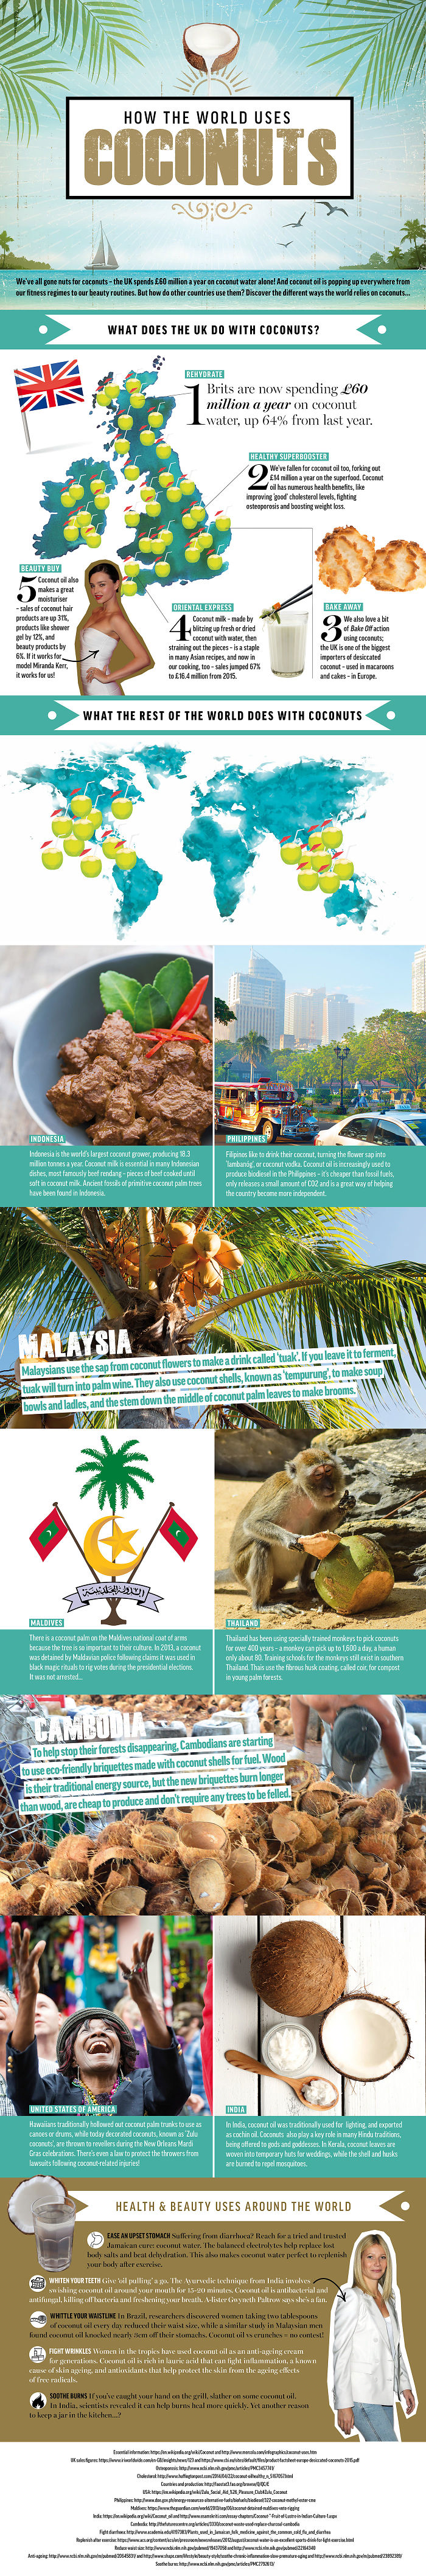 How The World Uses Coconuts!